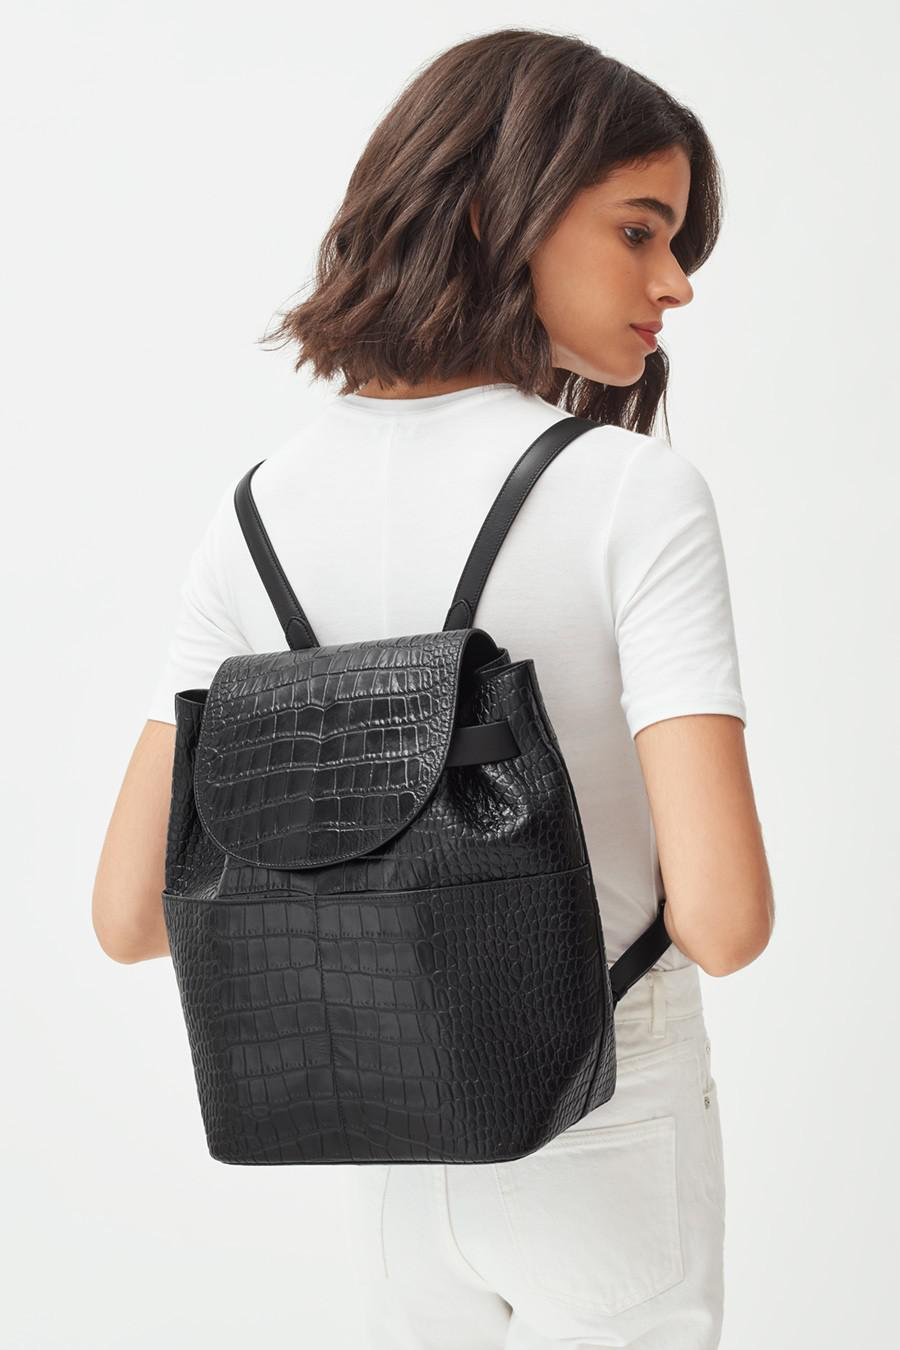 Women's Leather Backpack in Textured Black | Croc-Embossed by Cuyana 5